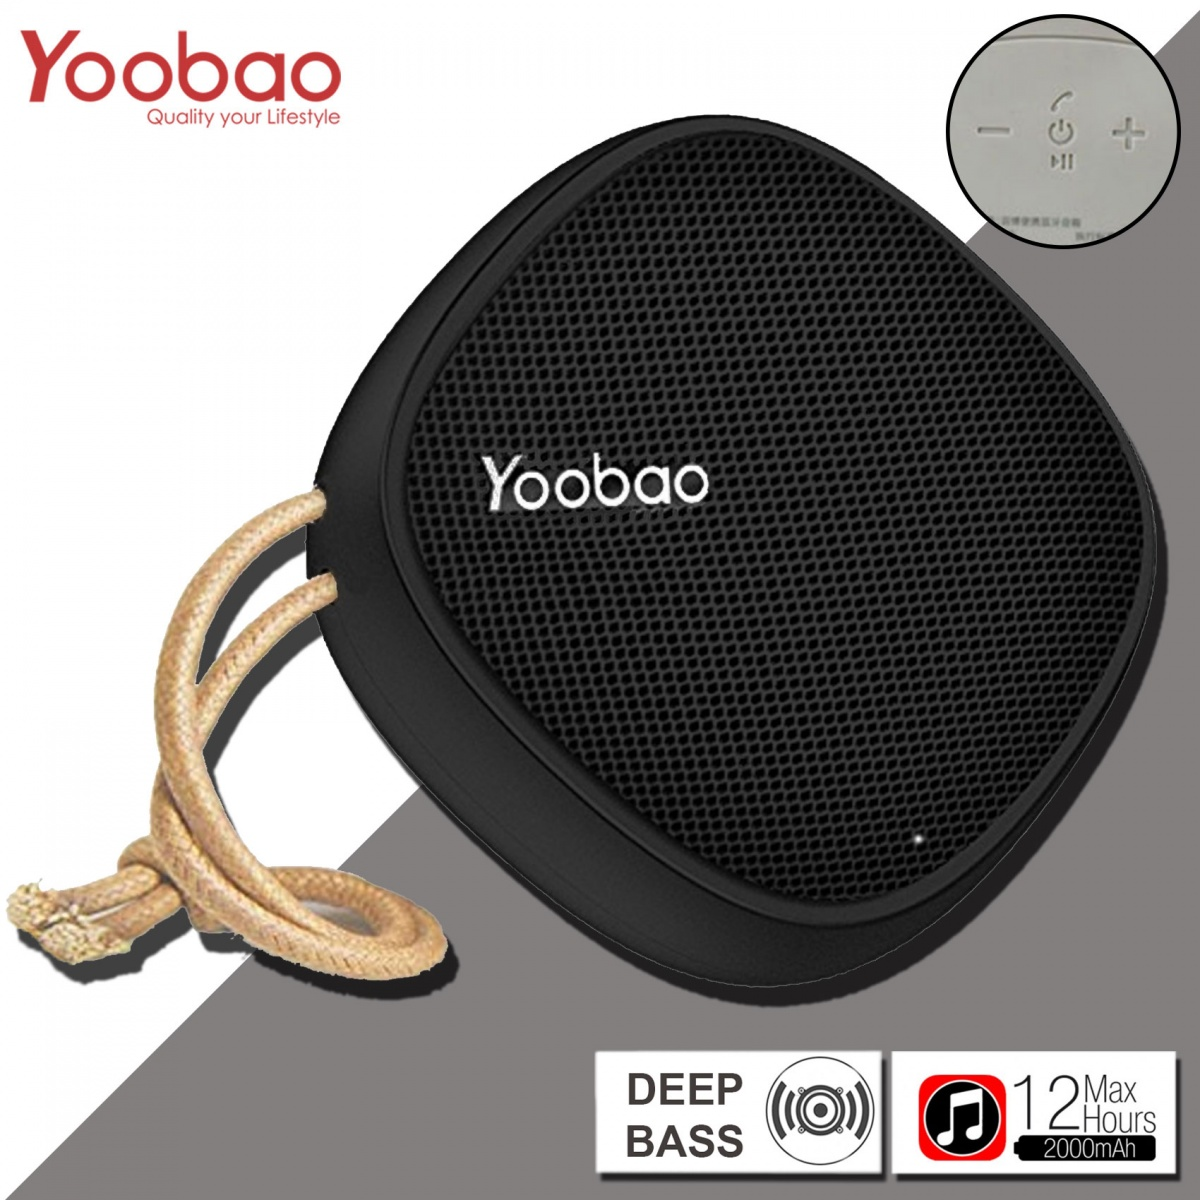 Yoobao M1 Portable Bluetooth Speaker - Black